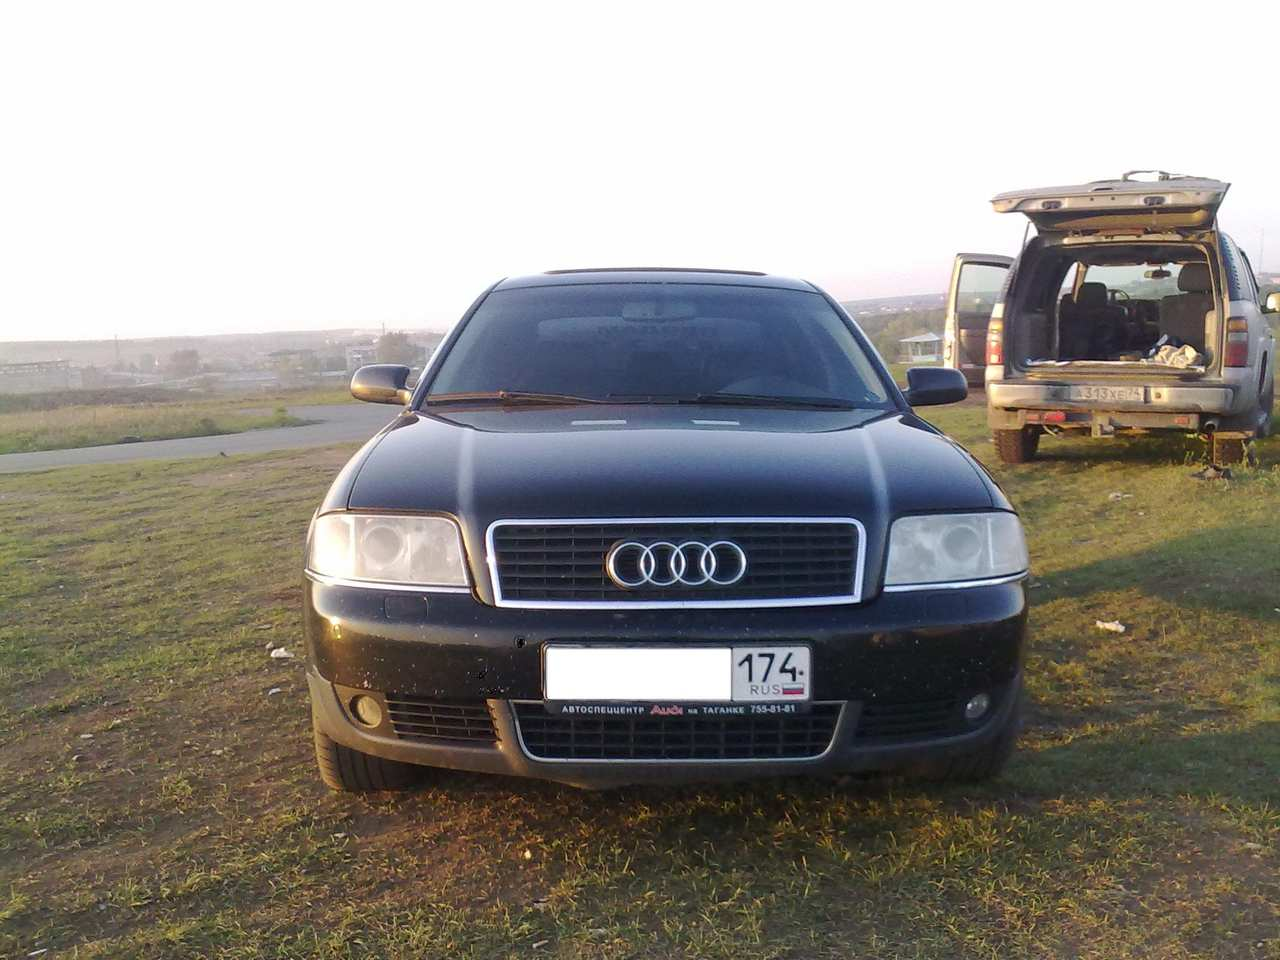 2002 audi a6 pictures 3000cc gasoline automatic for sale. Black Bedroom Furniture Sets. Home Design Ideas